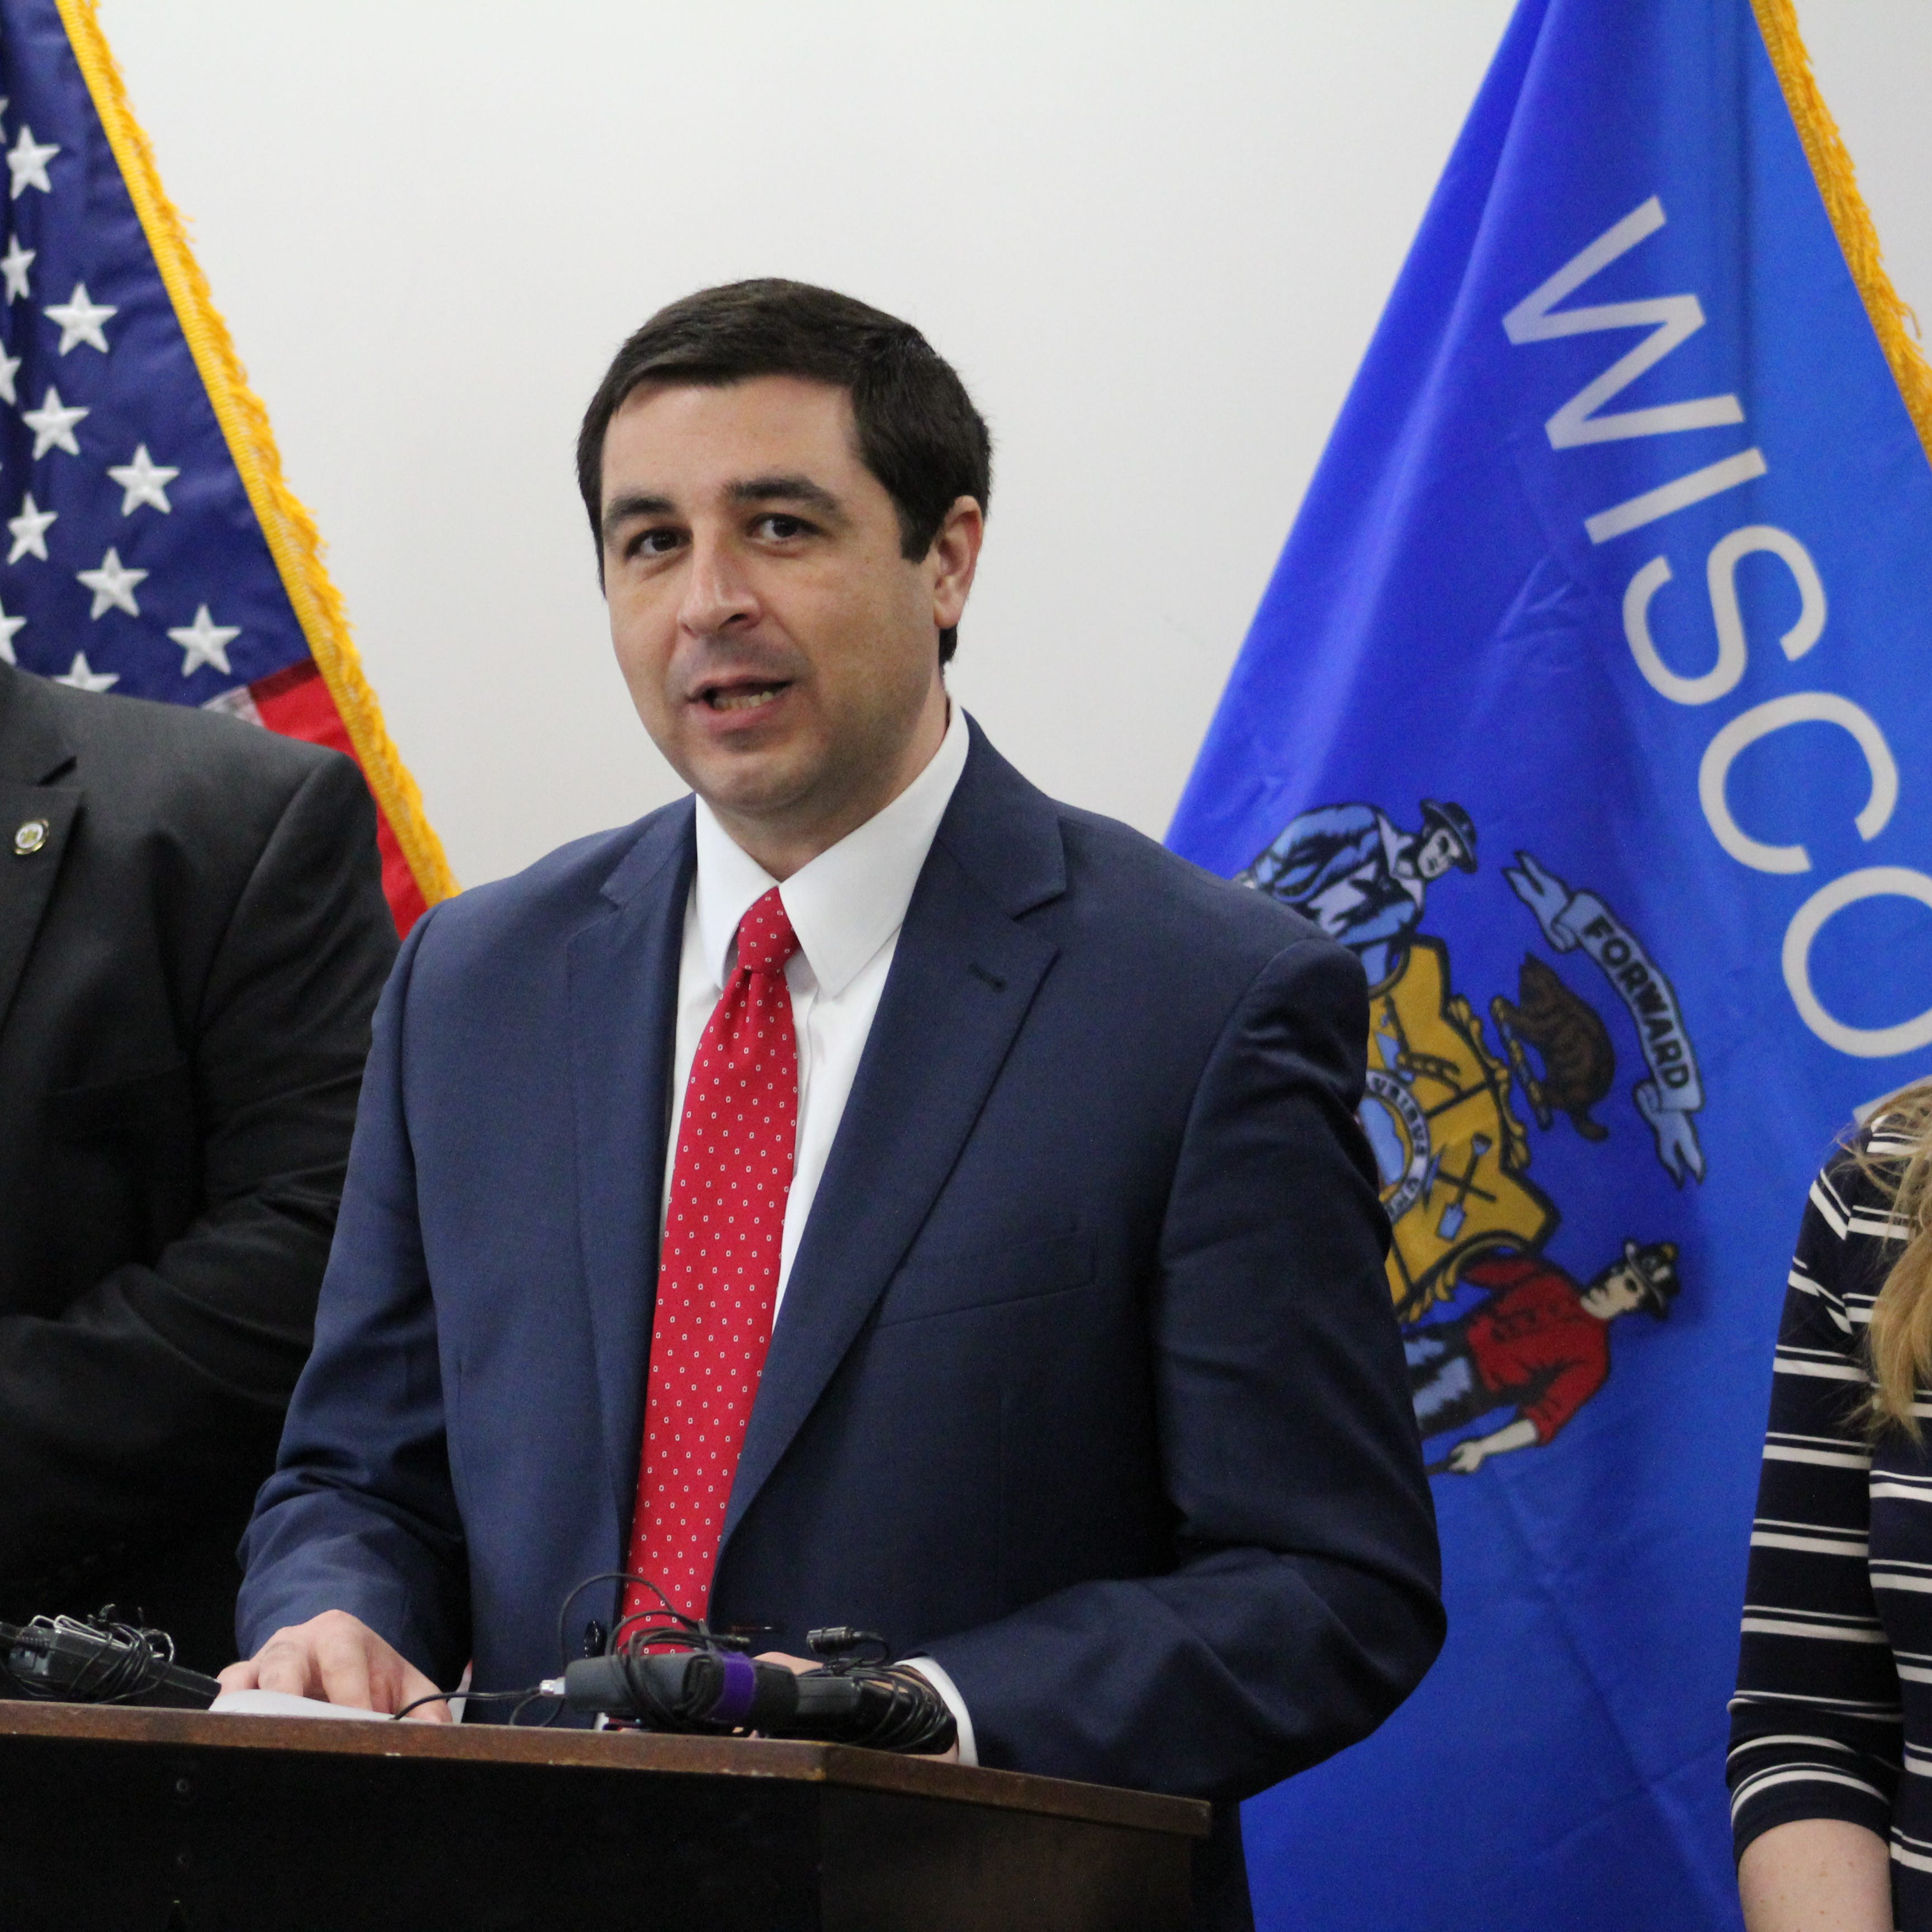 Wisconsin DOJ rape kit tests yield charges against 5 people